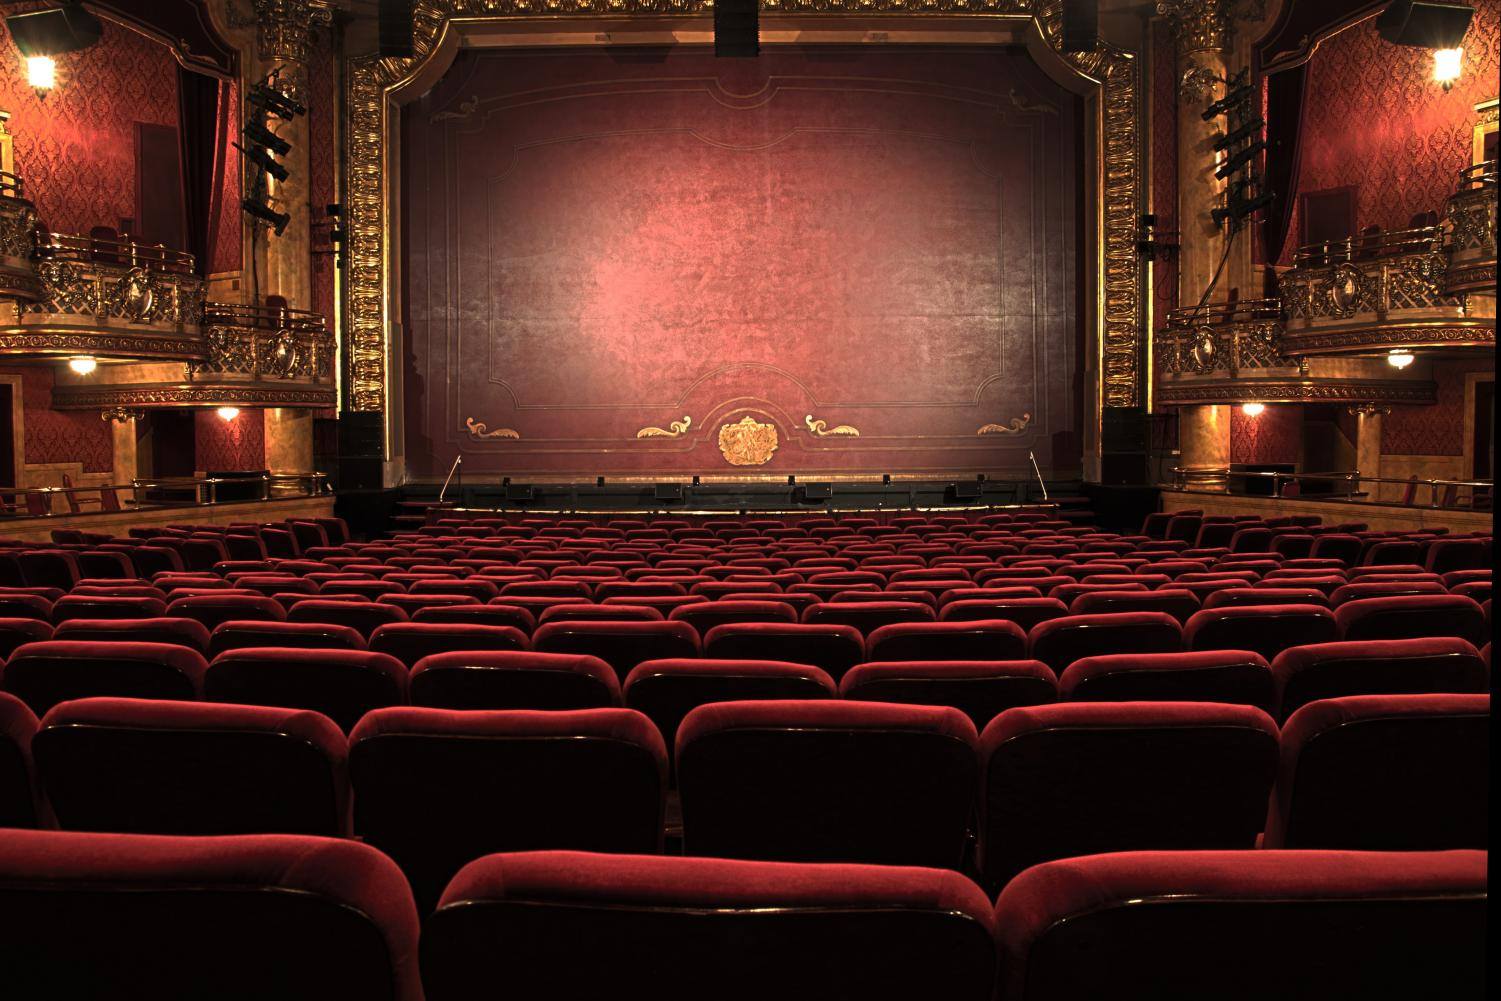 Movie theaters are likely to be packed this year with many films unique and franchise alike.